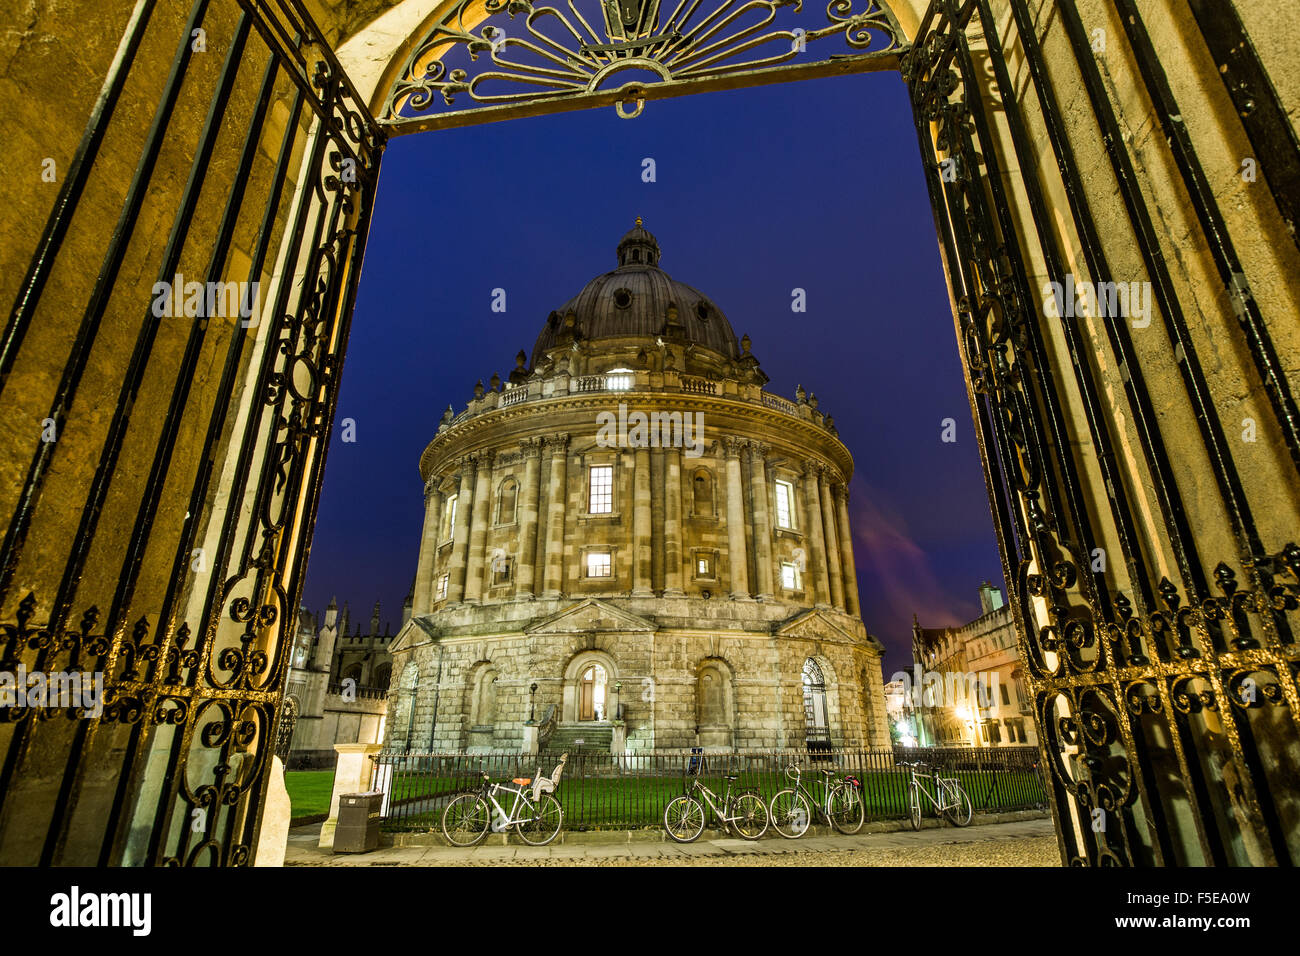 Radcliffe Camera at night, Oxford, Oxfordshire, England, United Kingdom, Europe - Stock Image